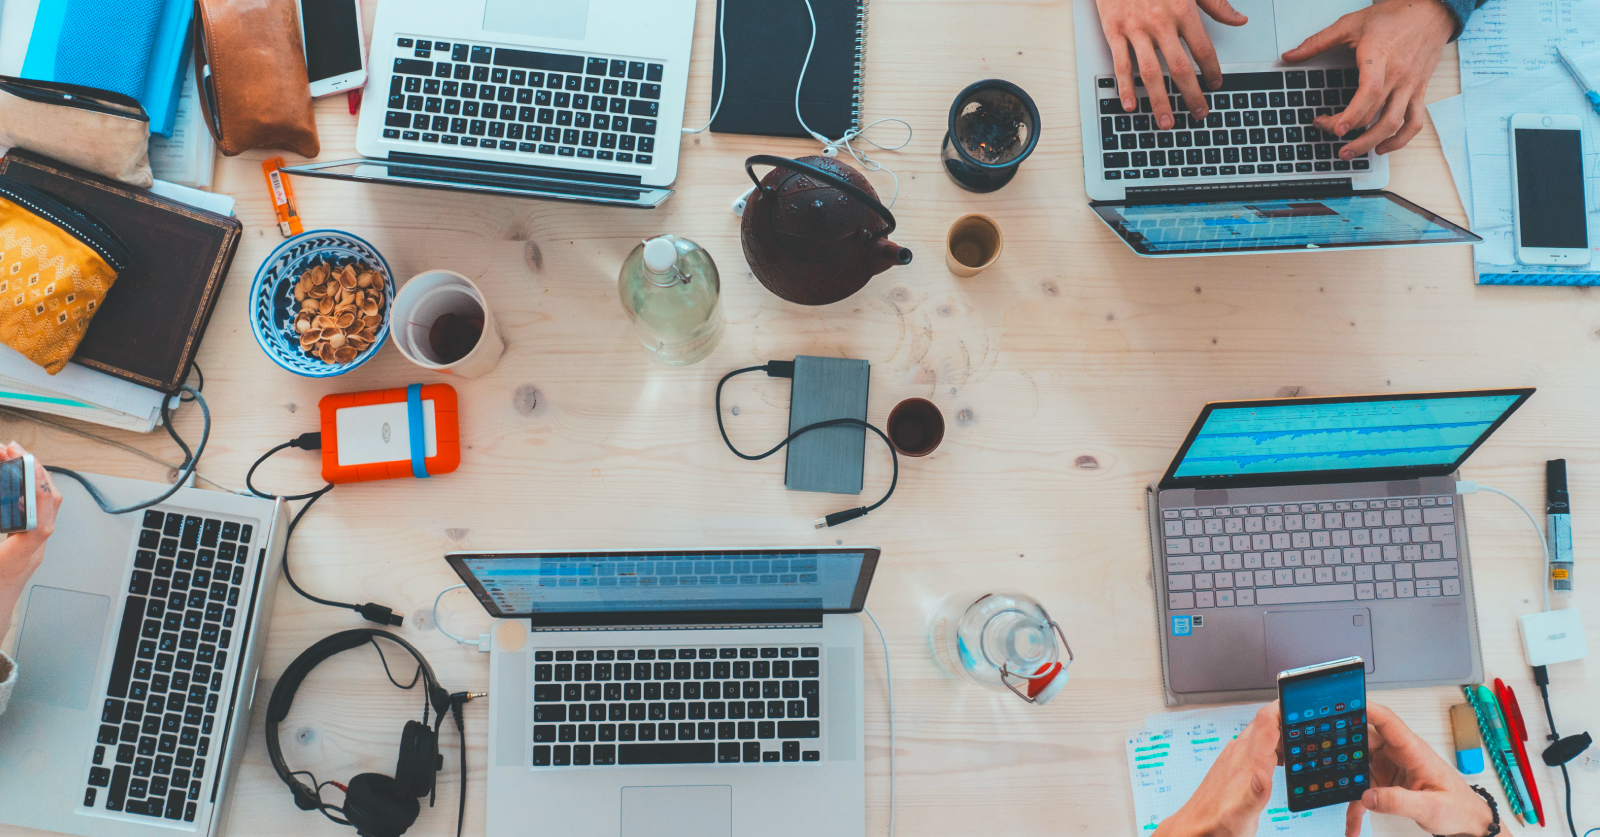 10 Essential Tools to Start Your Own Business